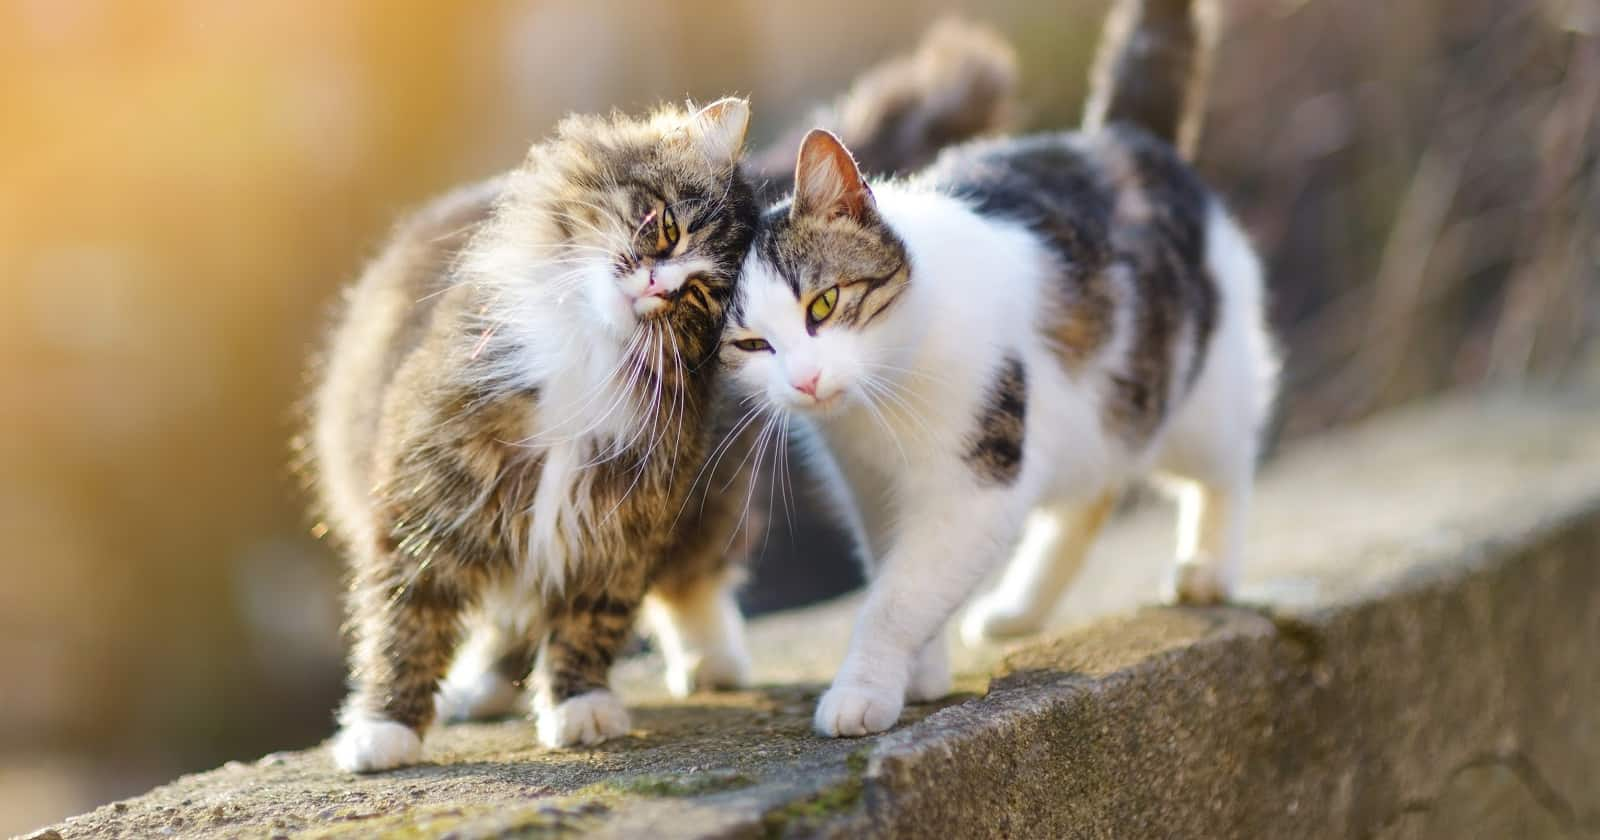 Do cats feel love for other cats? What about their humans? Are they even capable of love at all? Read on to learn the answers!